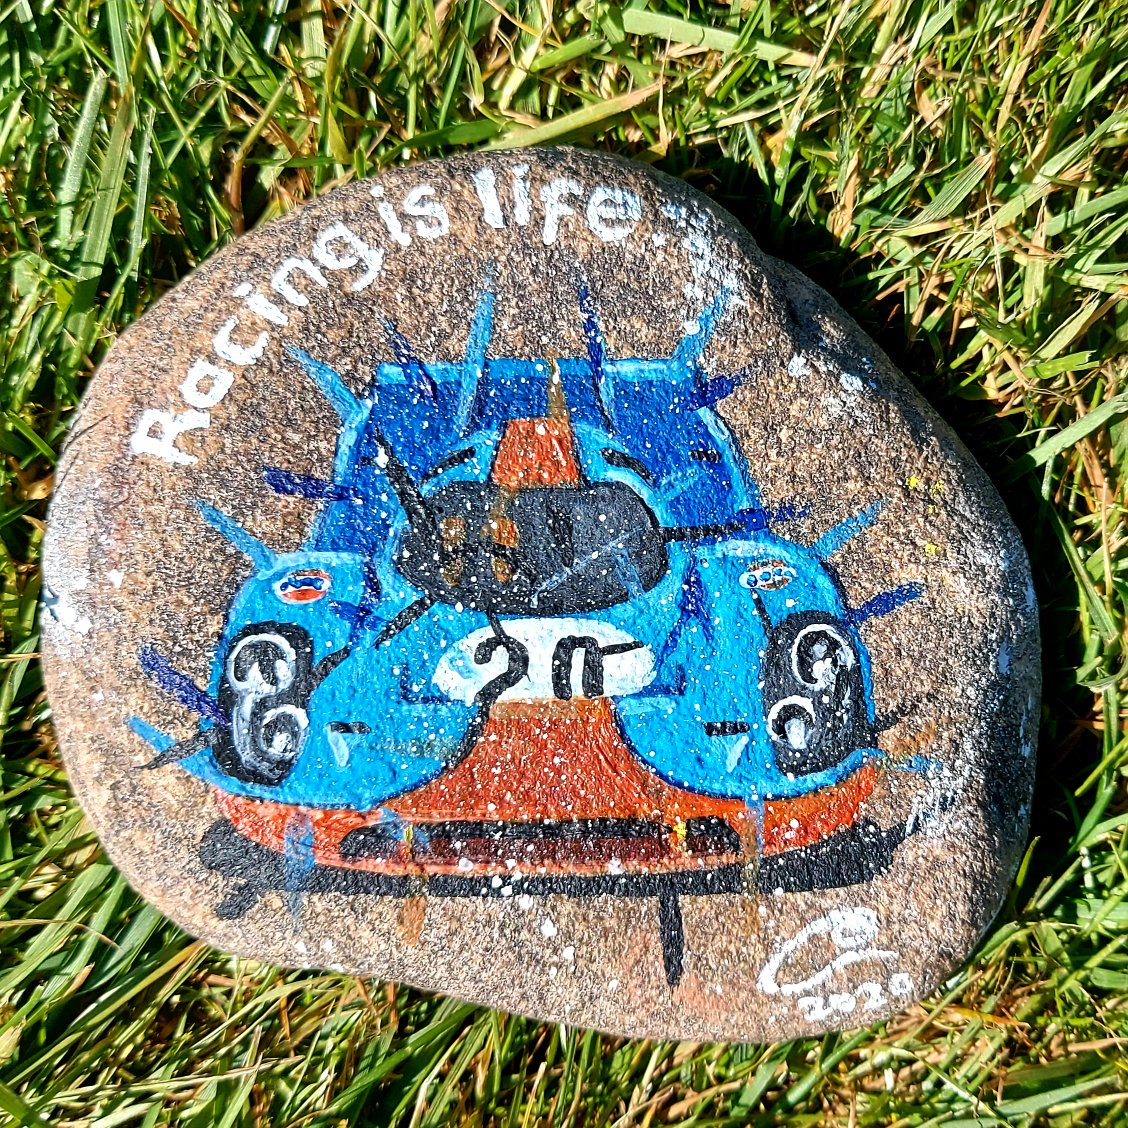 I just made rocks better!!! With my #RockdownLockdown rock painting of #SteveMcQueen's #LeMans @Gulf_Racing @Porsche 917k! I'll give it away to anyone who follows and retweets using the hashtag #MakingRocksBetter https://t.co/Vj6dZcB6yb